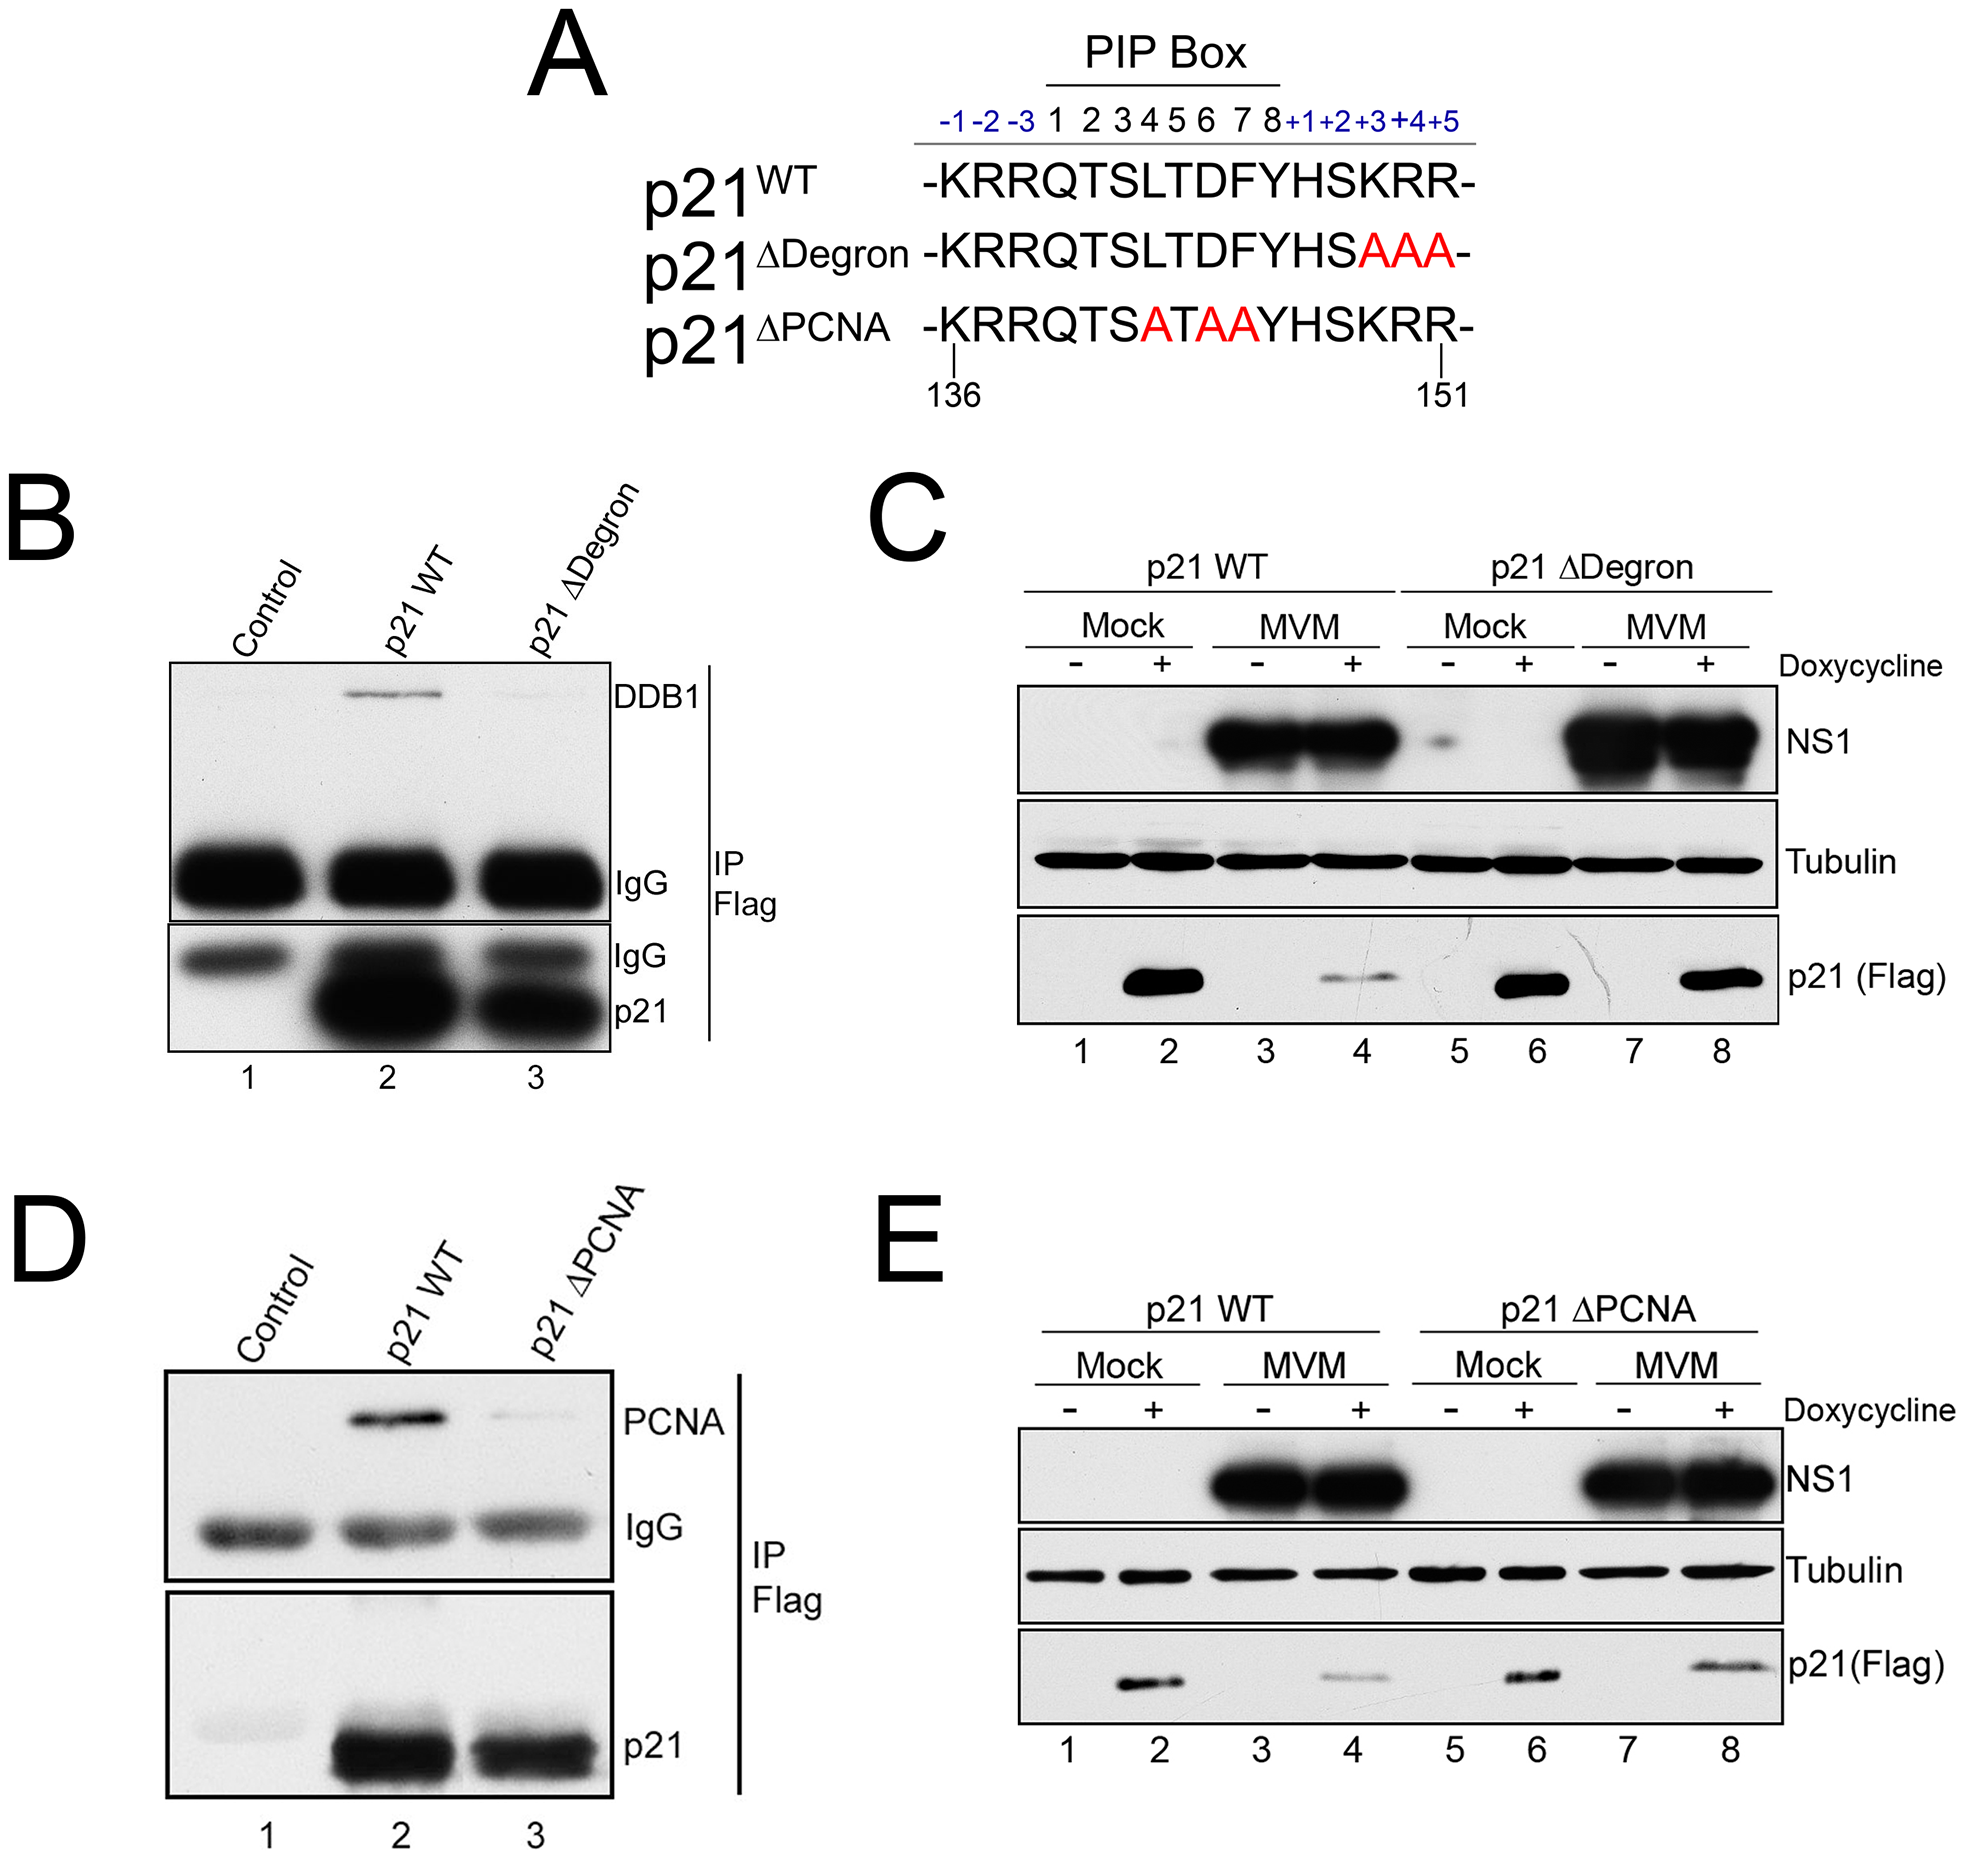 p21 degradation during MVM requires interaction with PCNA and the CRL4<sup>Cdt2</sup> ligase complex.